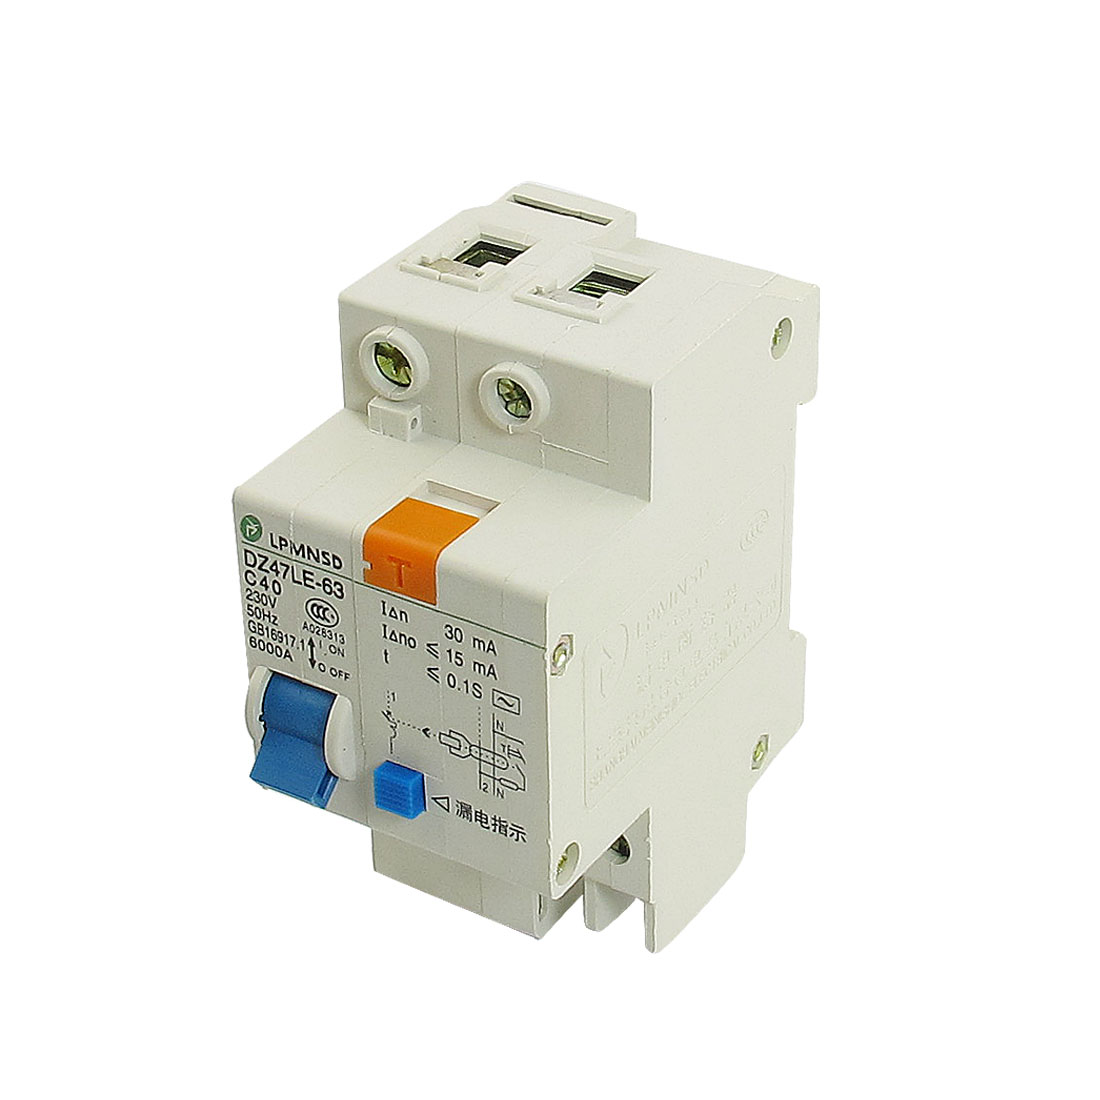 DIN Dail 1P Overload Proetction Circuit Breaker 230VAC 40A 6000A DZ47LE-63